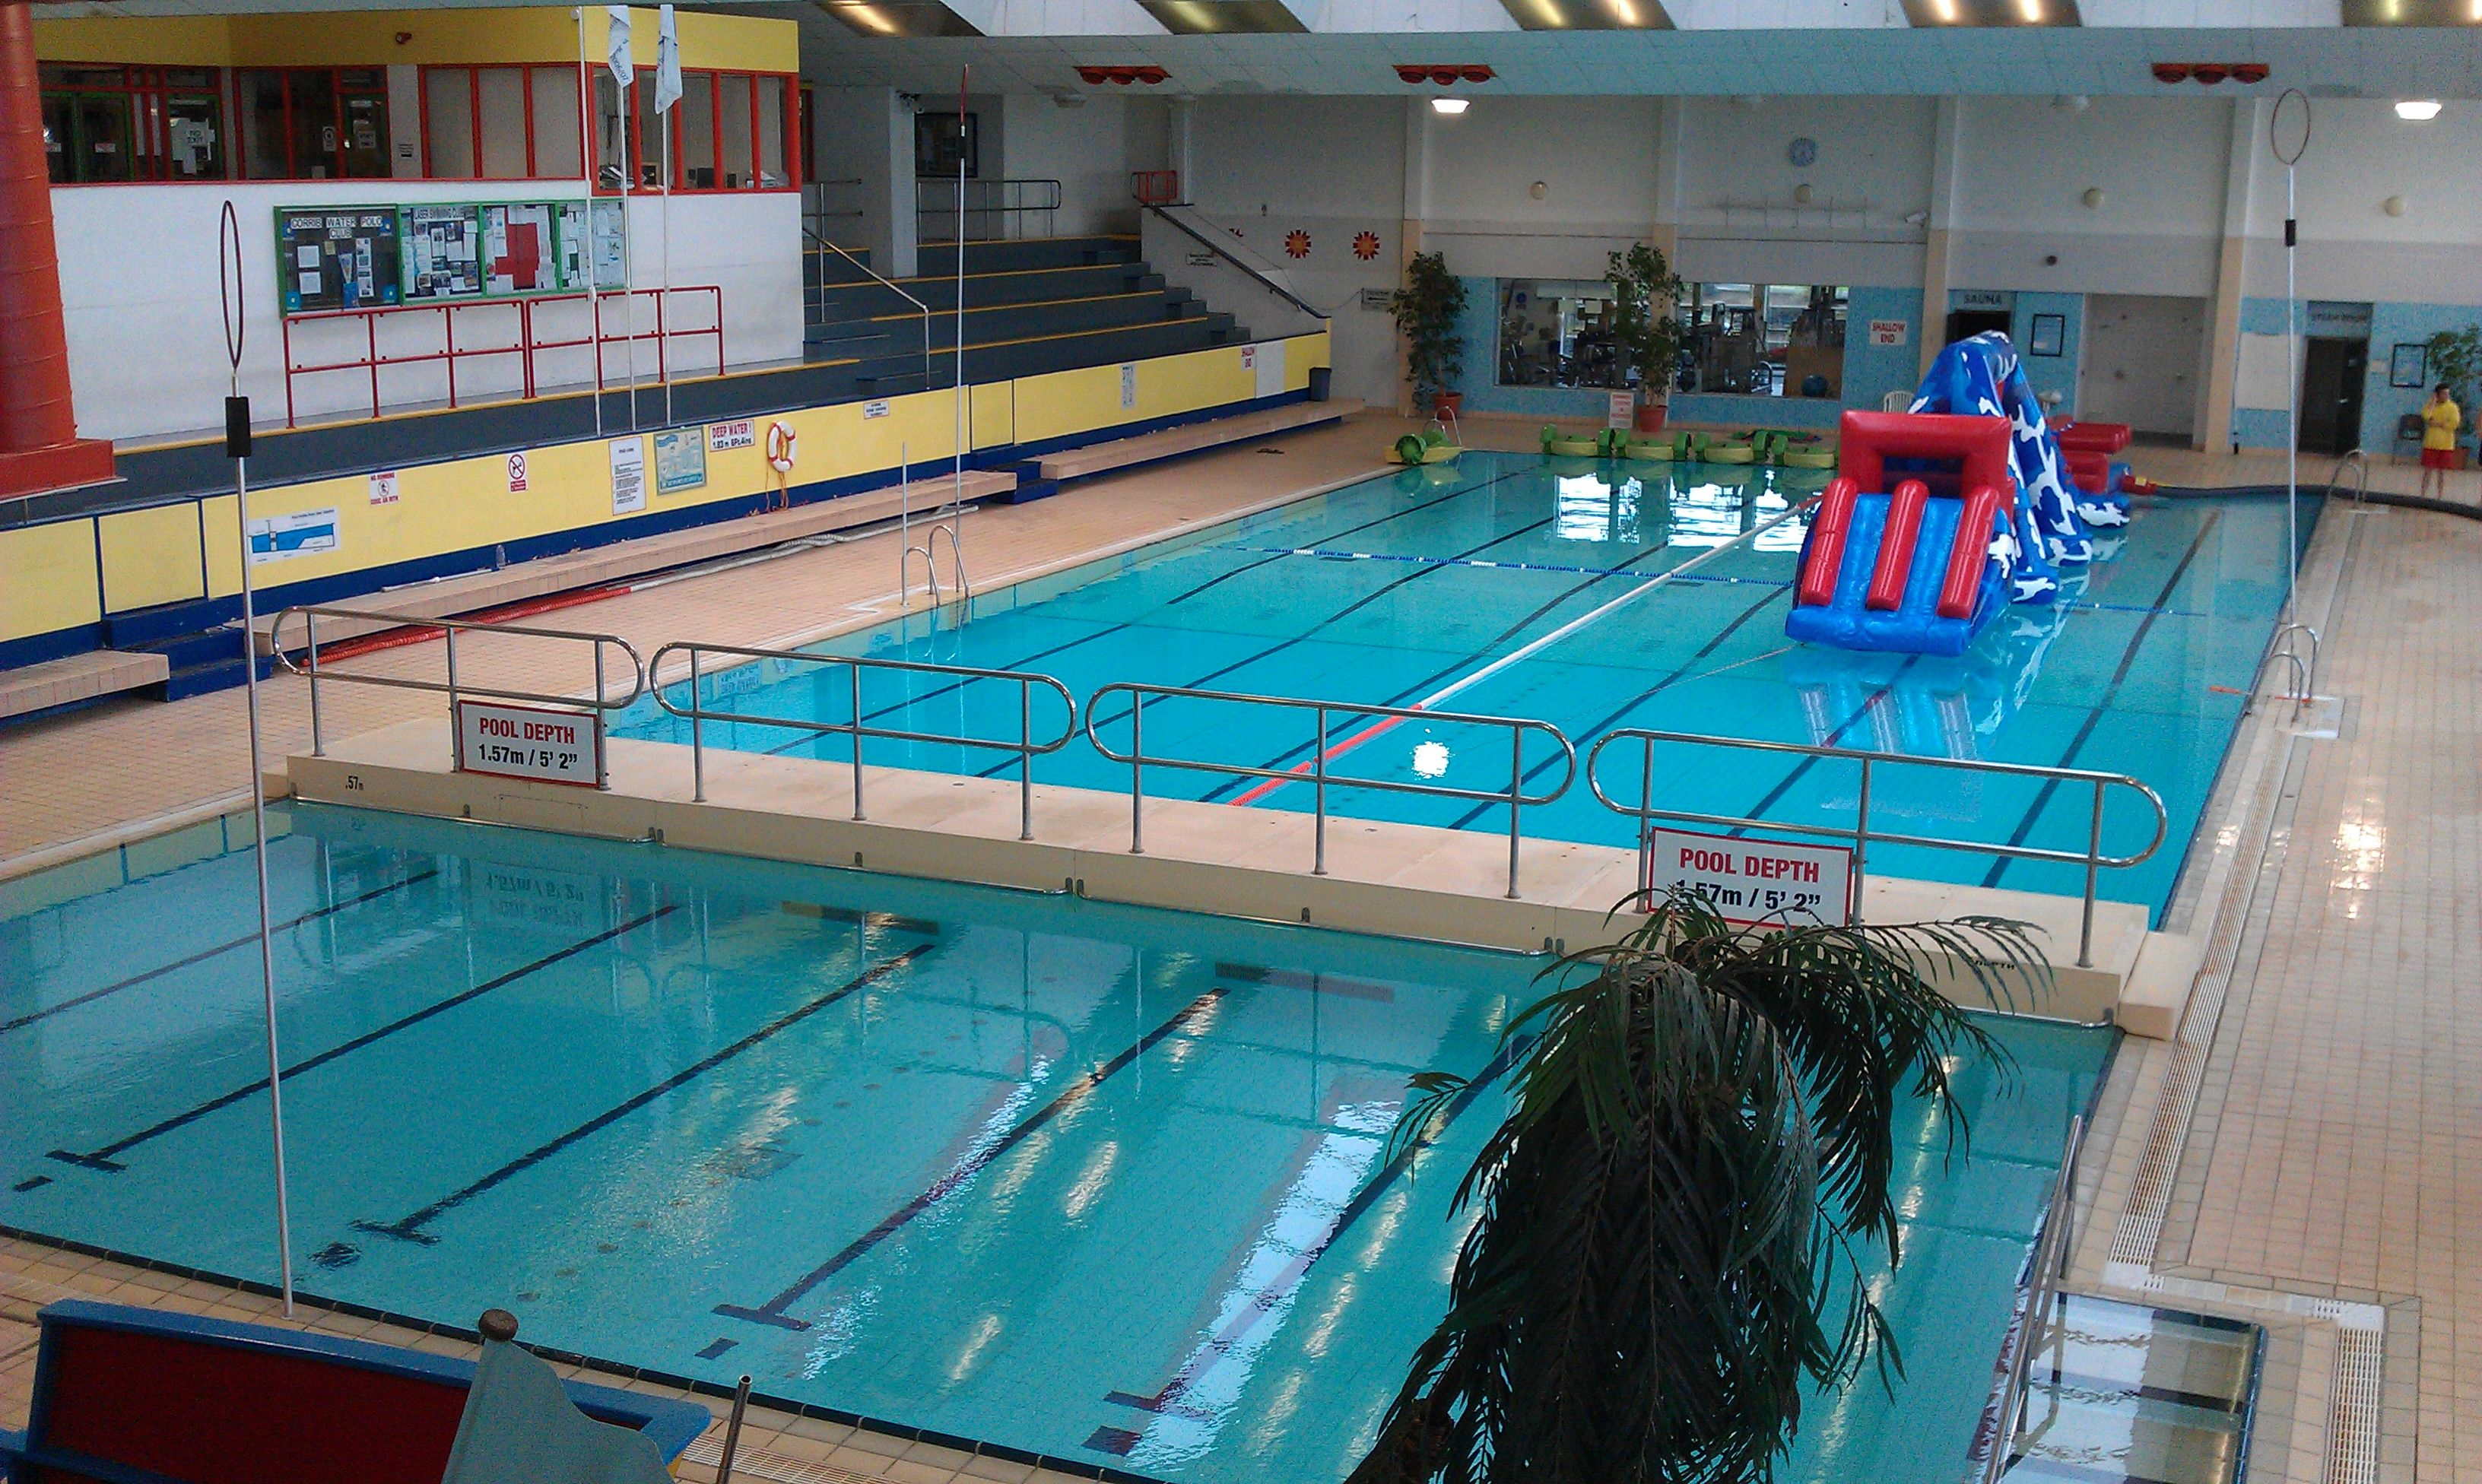 Leisureland pool leisureland 39 s swimming pools - Hotels in salthill with swimming pool ...